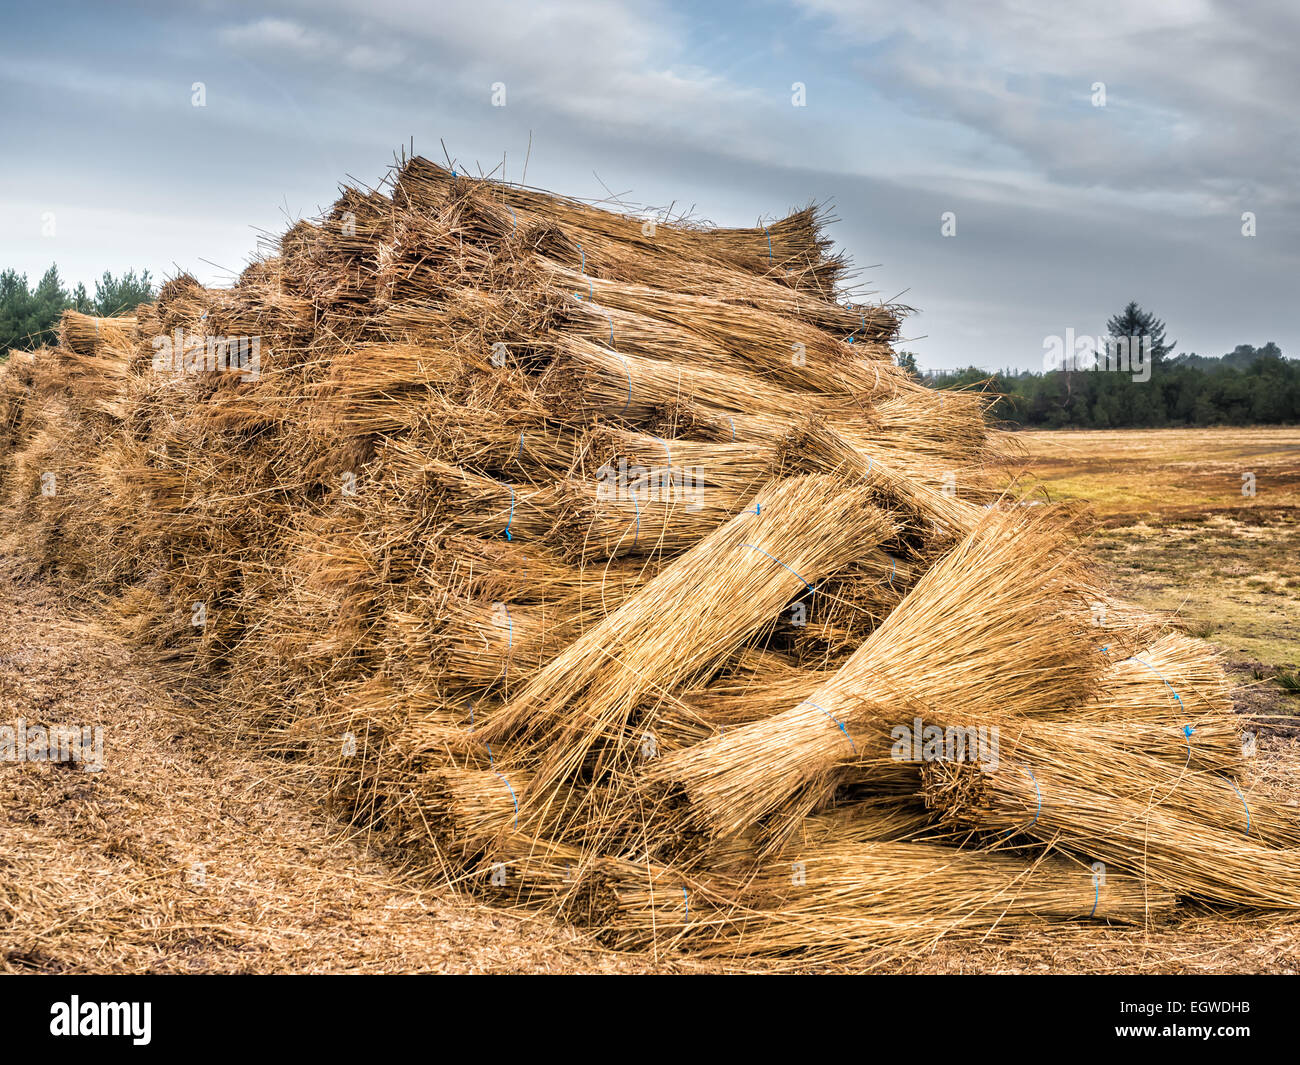 Reeds for thatching sampled in big bundles - Stock Image